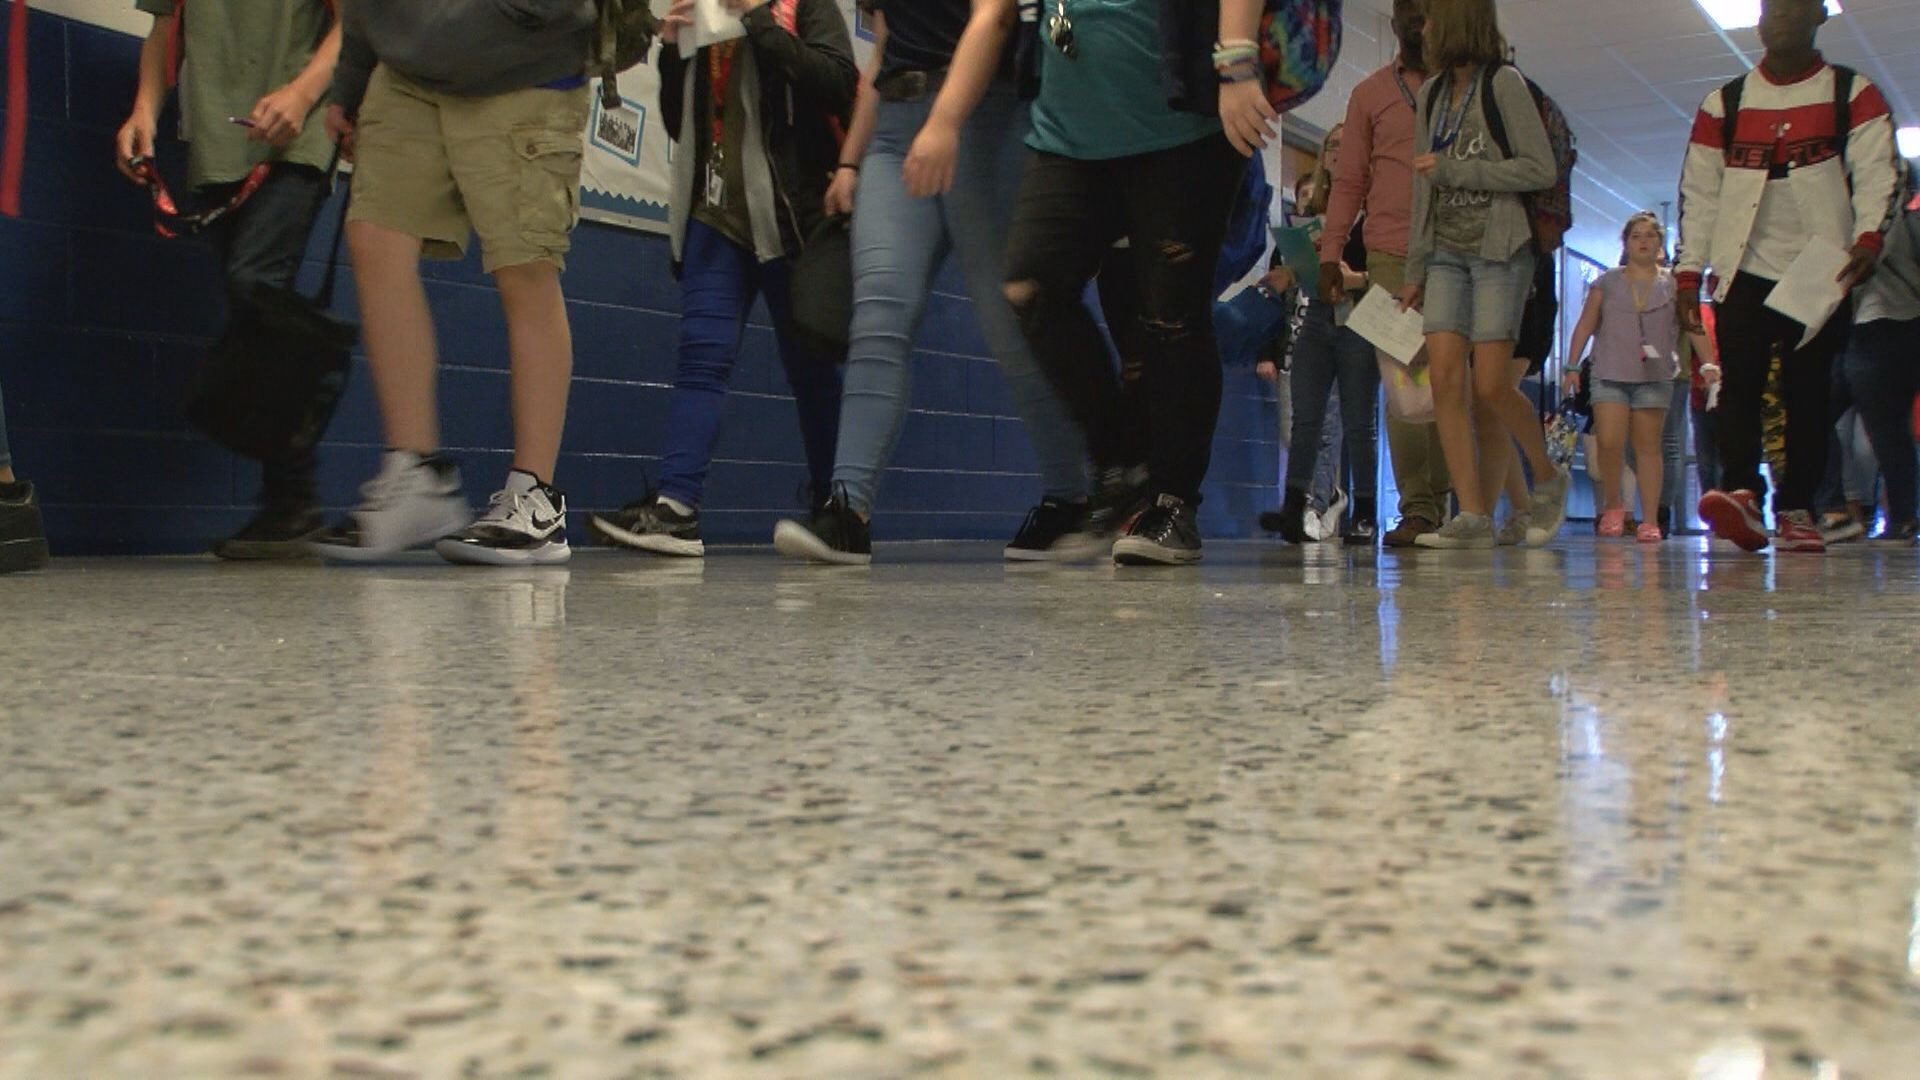 First day of school in Onslow County | WNCT